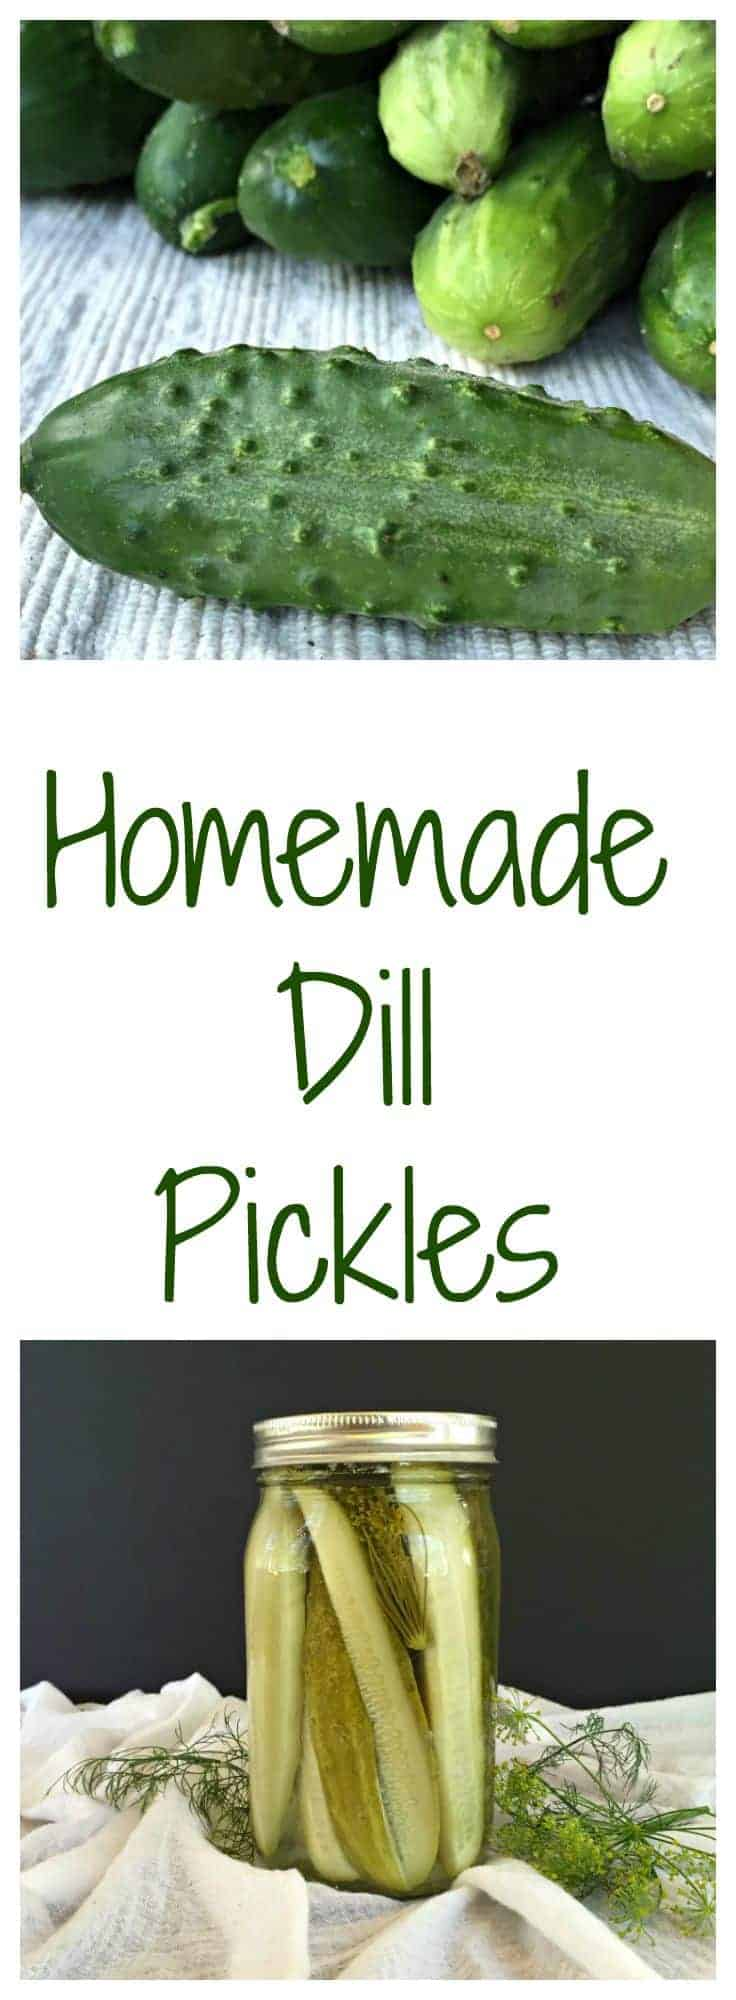 Homemade Dill Picles